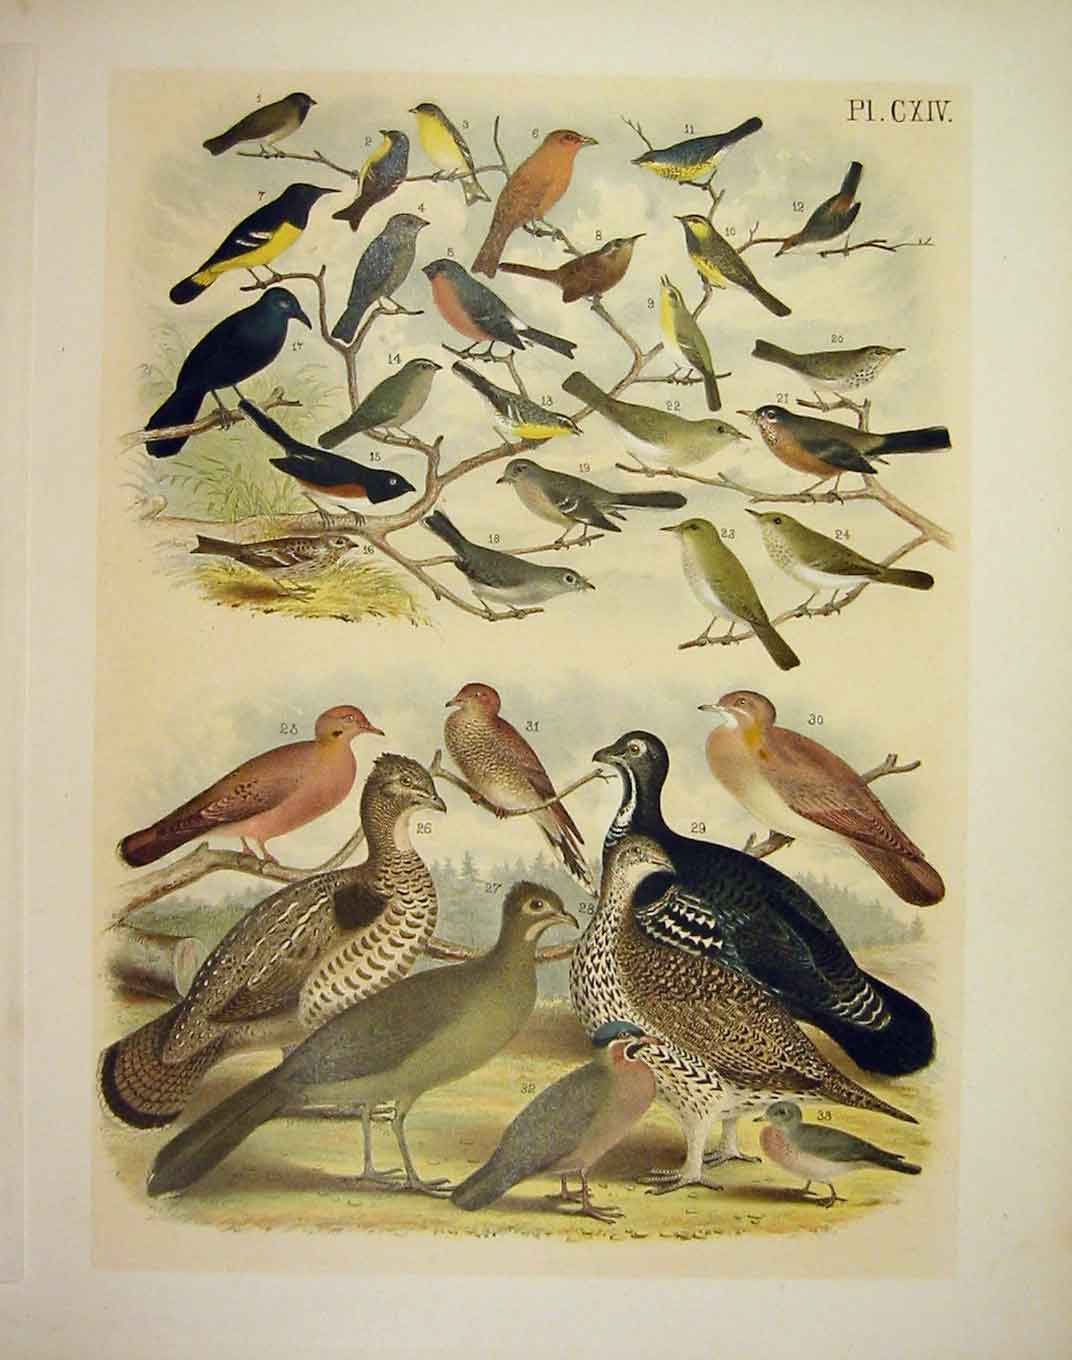 Print 33 Finch Warbler Grouse Dove Pigeon 1878 American Birds 149201 Old Original